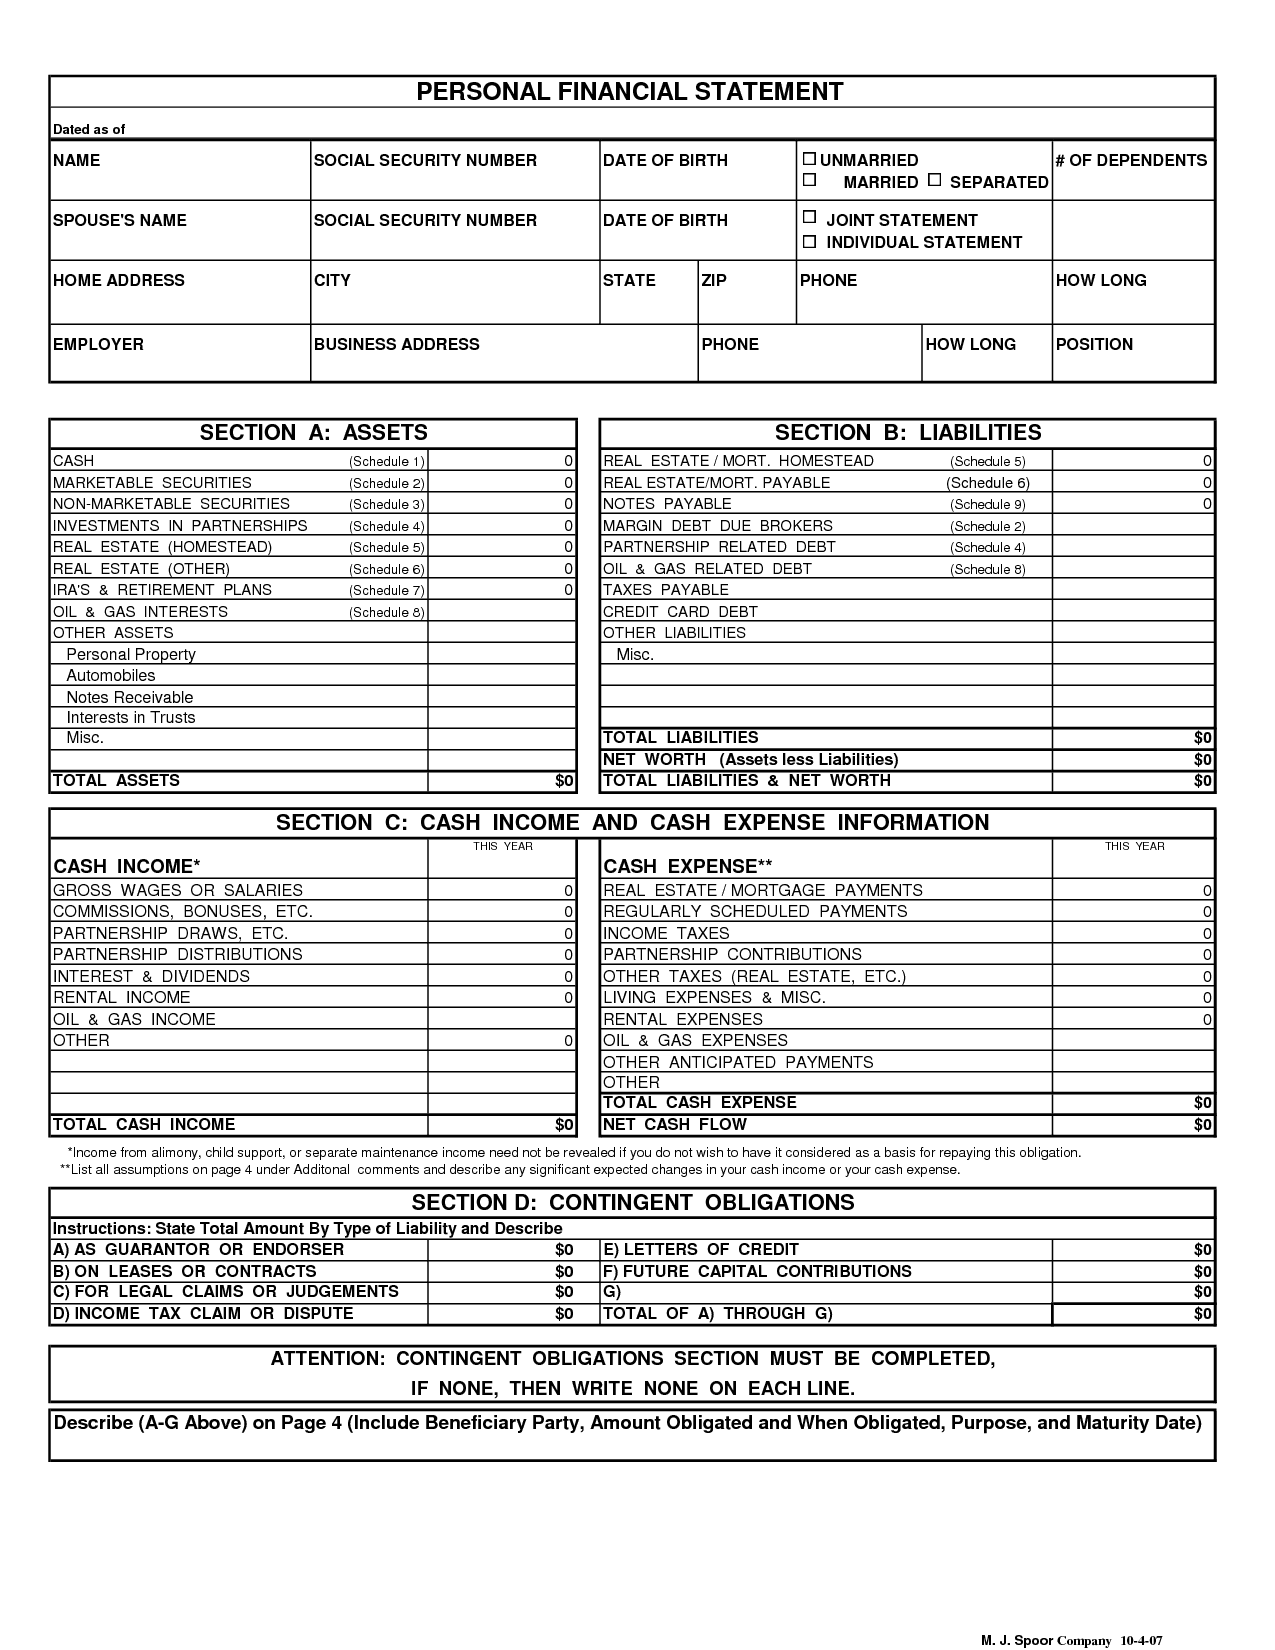 Personal Financial Statement Template Google Docs And Personal Financial Statement Template For Bank